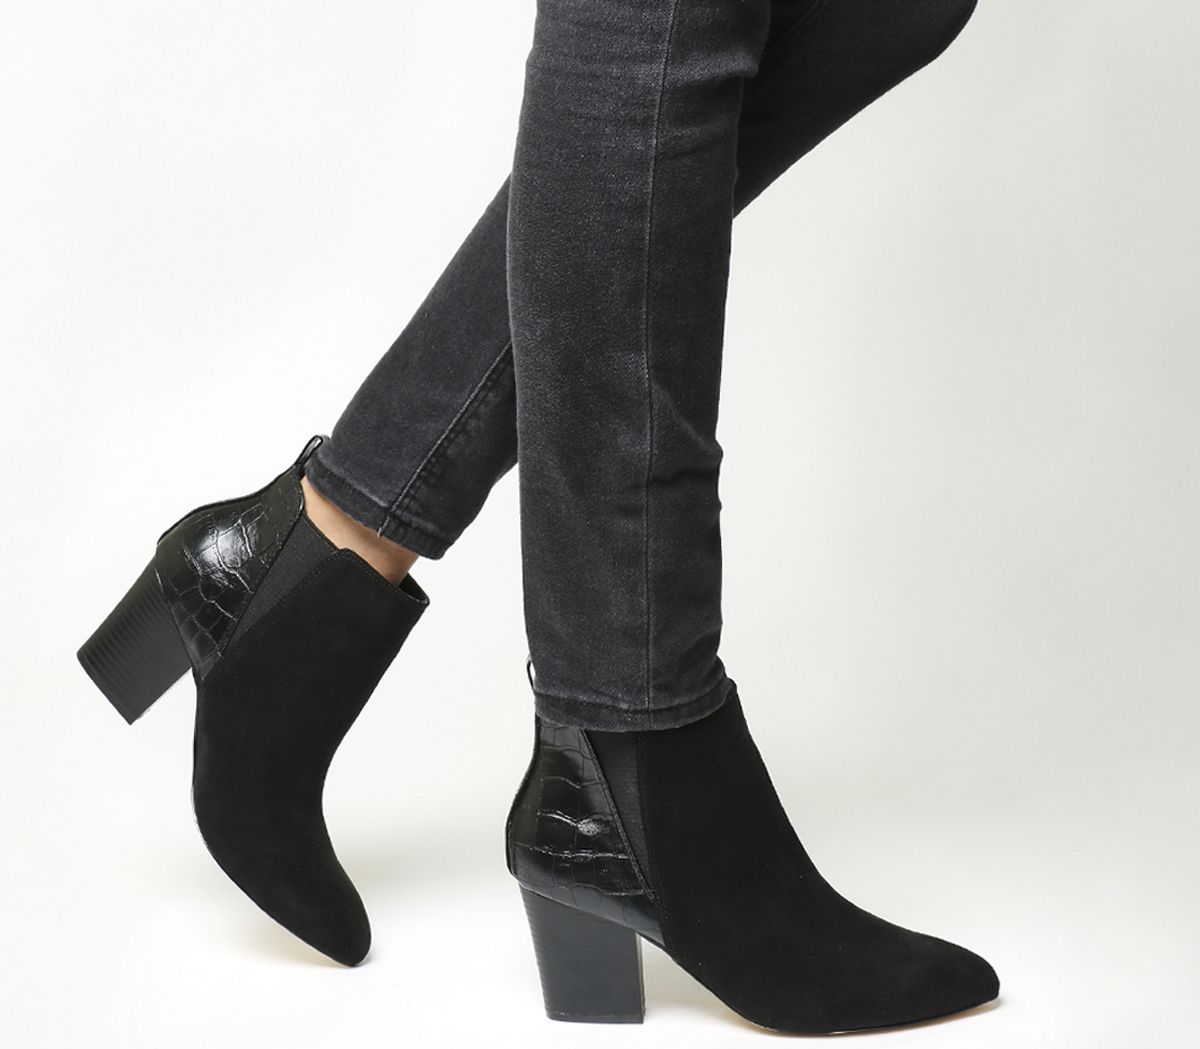 37acdcd56287 Office Anabella Point Chelsea Boots Black Croc - Ankle Boots